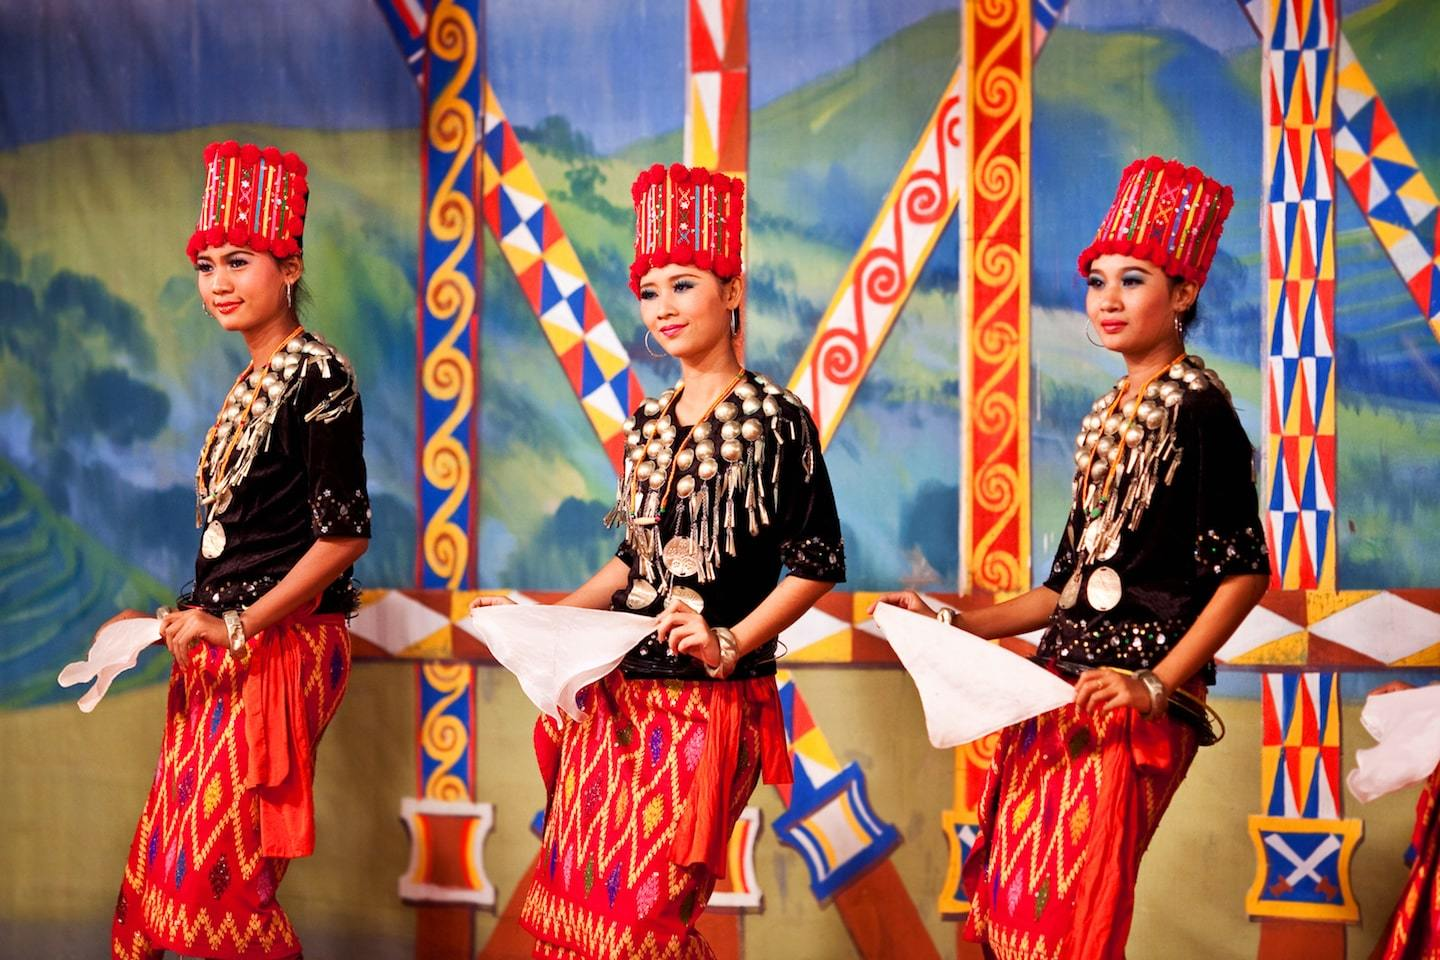 Burmese women dressed up and putting on traditional dance